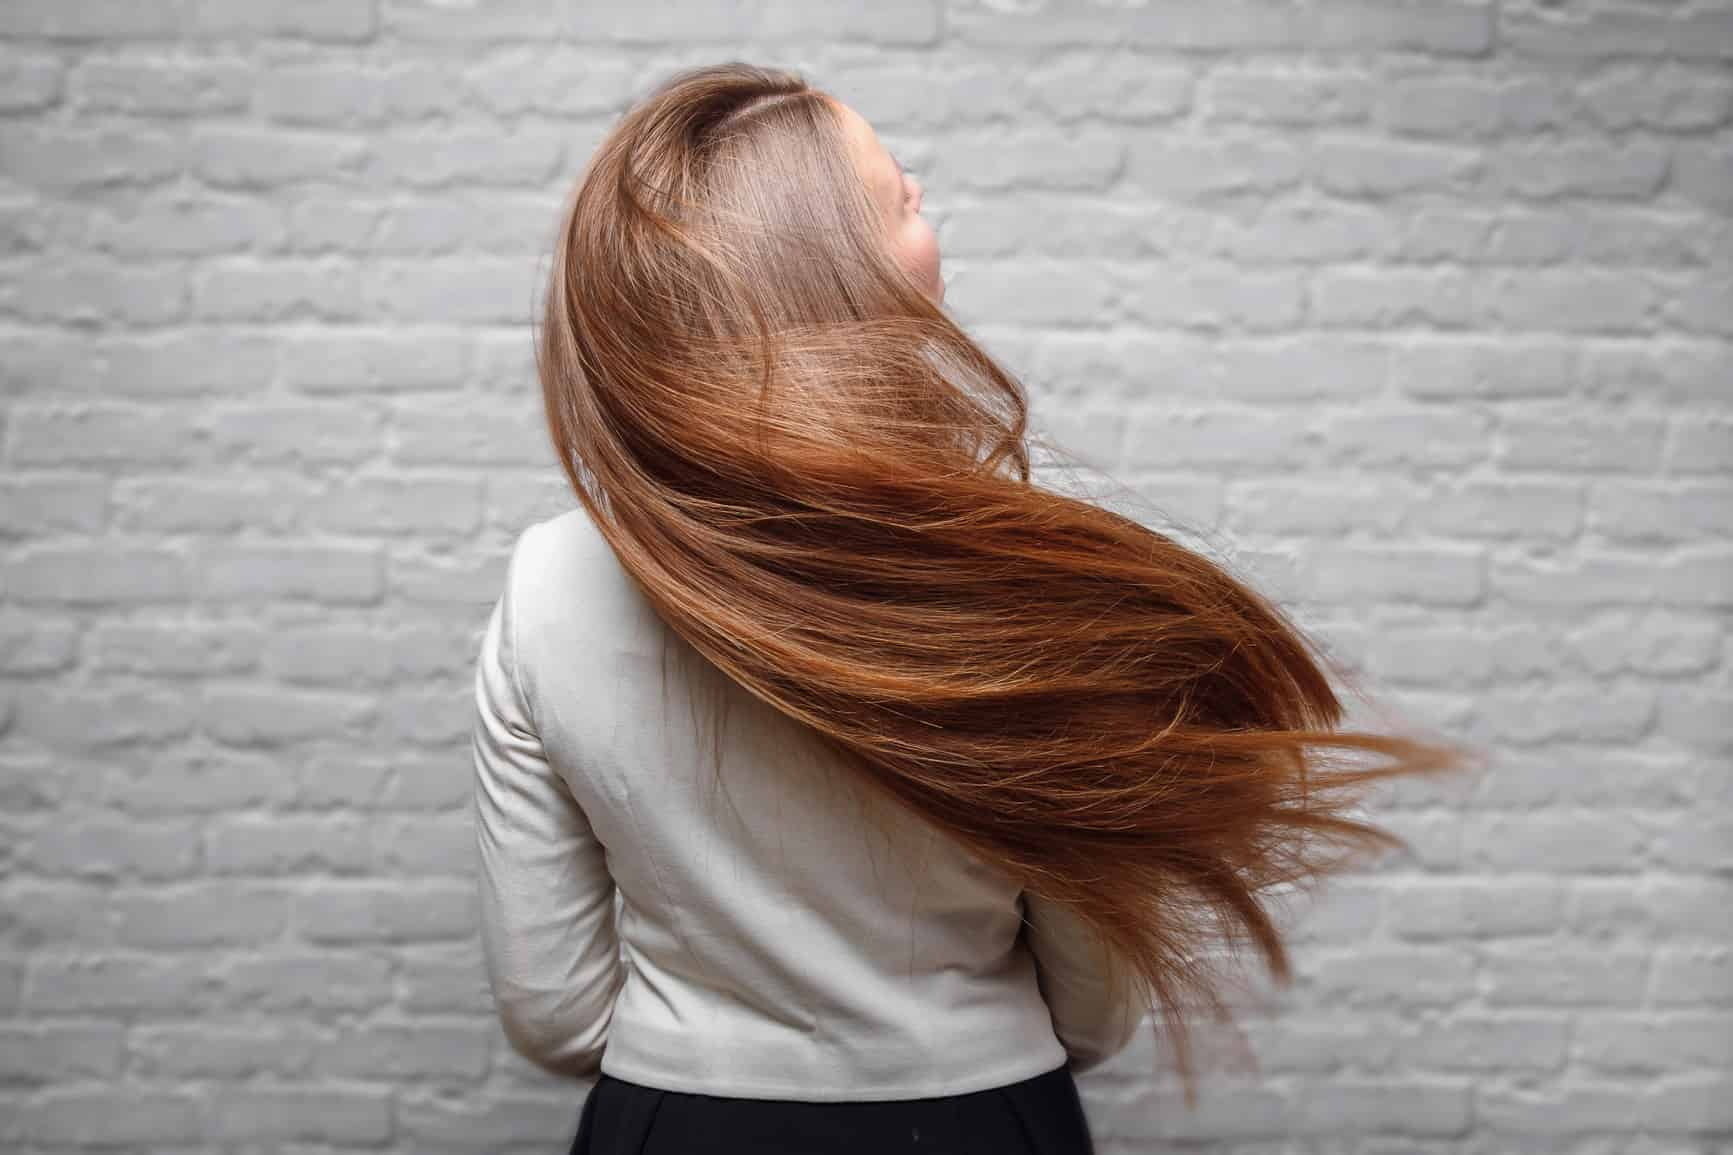 What Are Sew-In Hair Extensions?